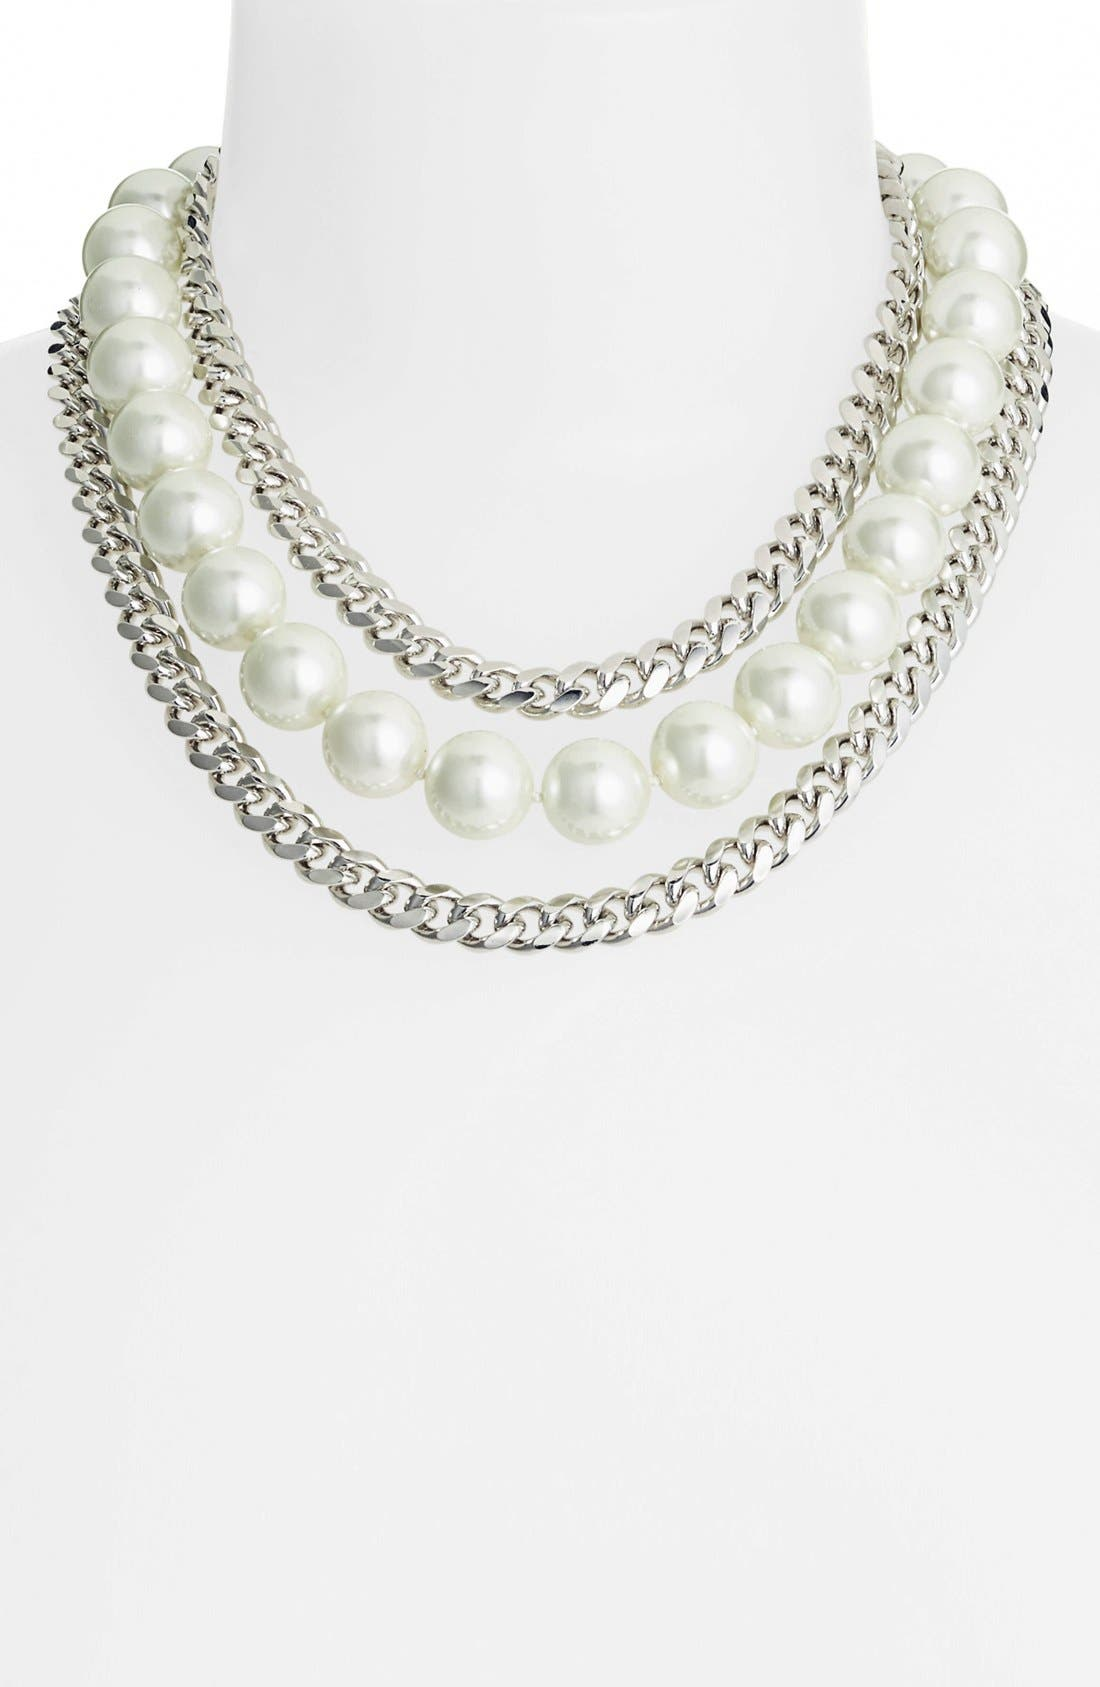 Alternate Image 1 Selected - Givenchy Faux Pearl & Link Bib Necklace (Nordstrom Exclusive)